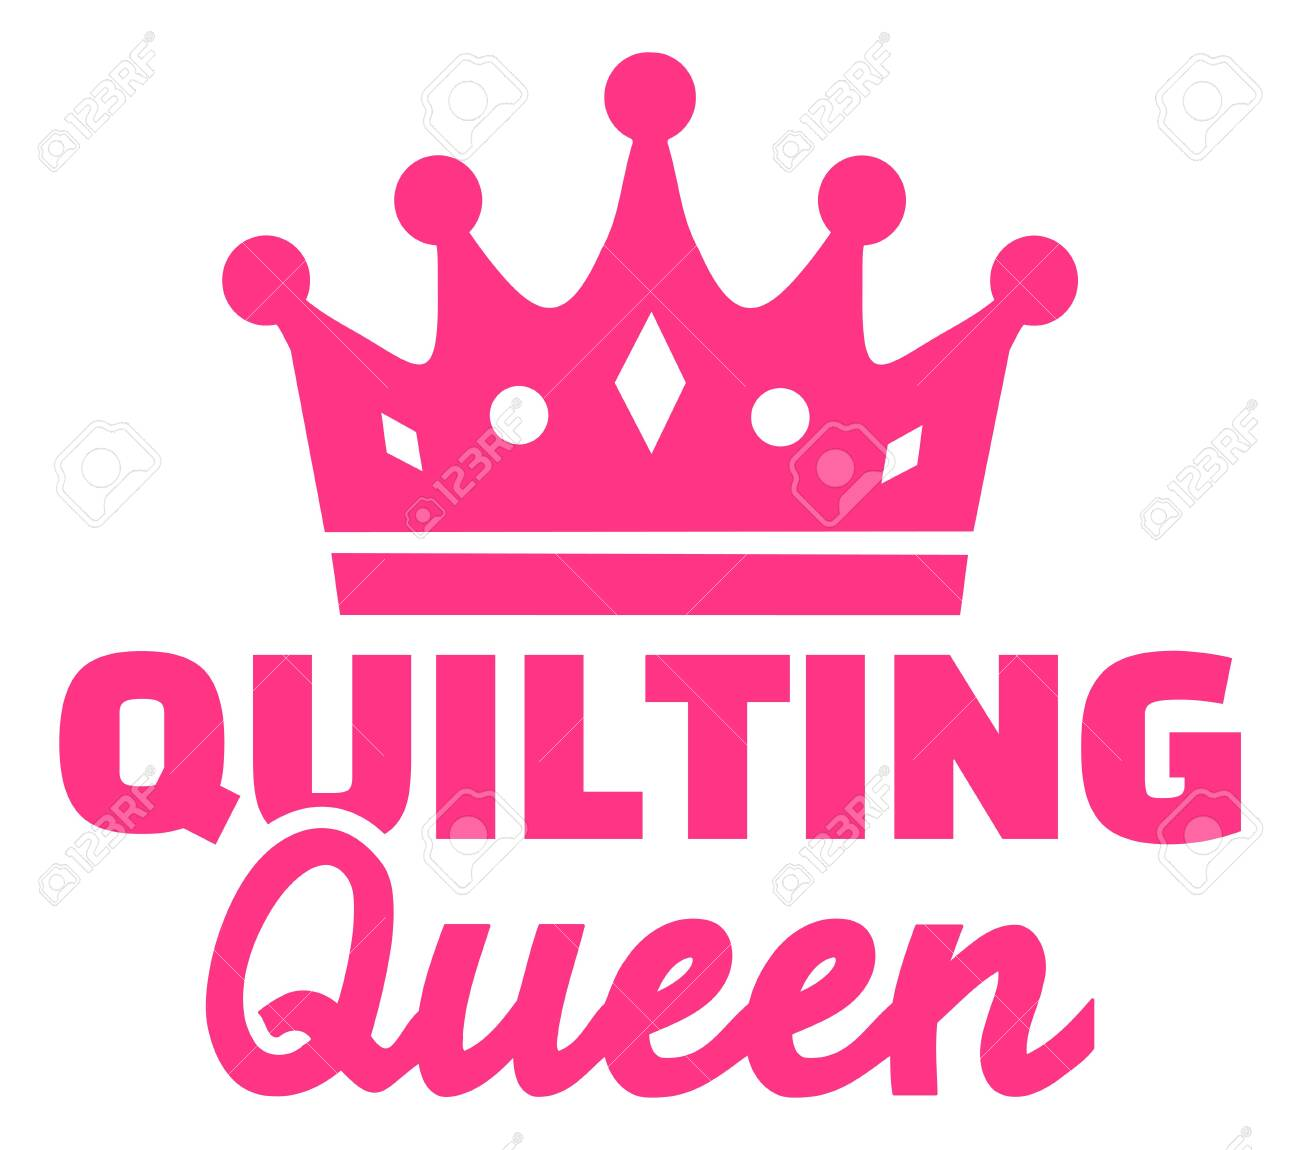 Quilting queen pink crown icon - 139820277